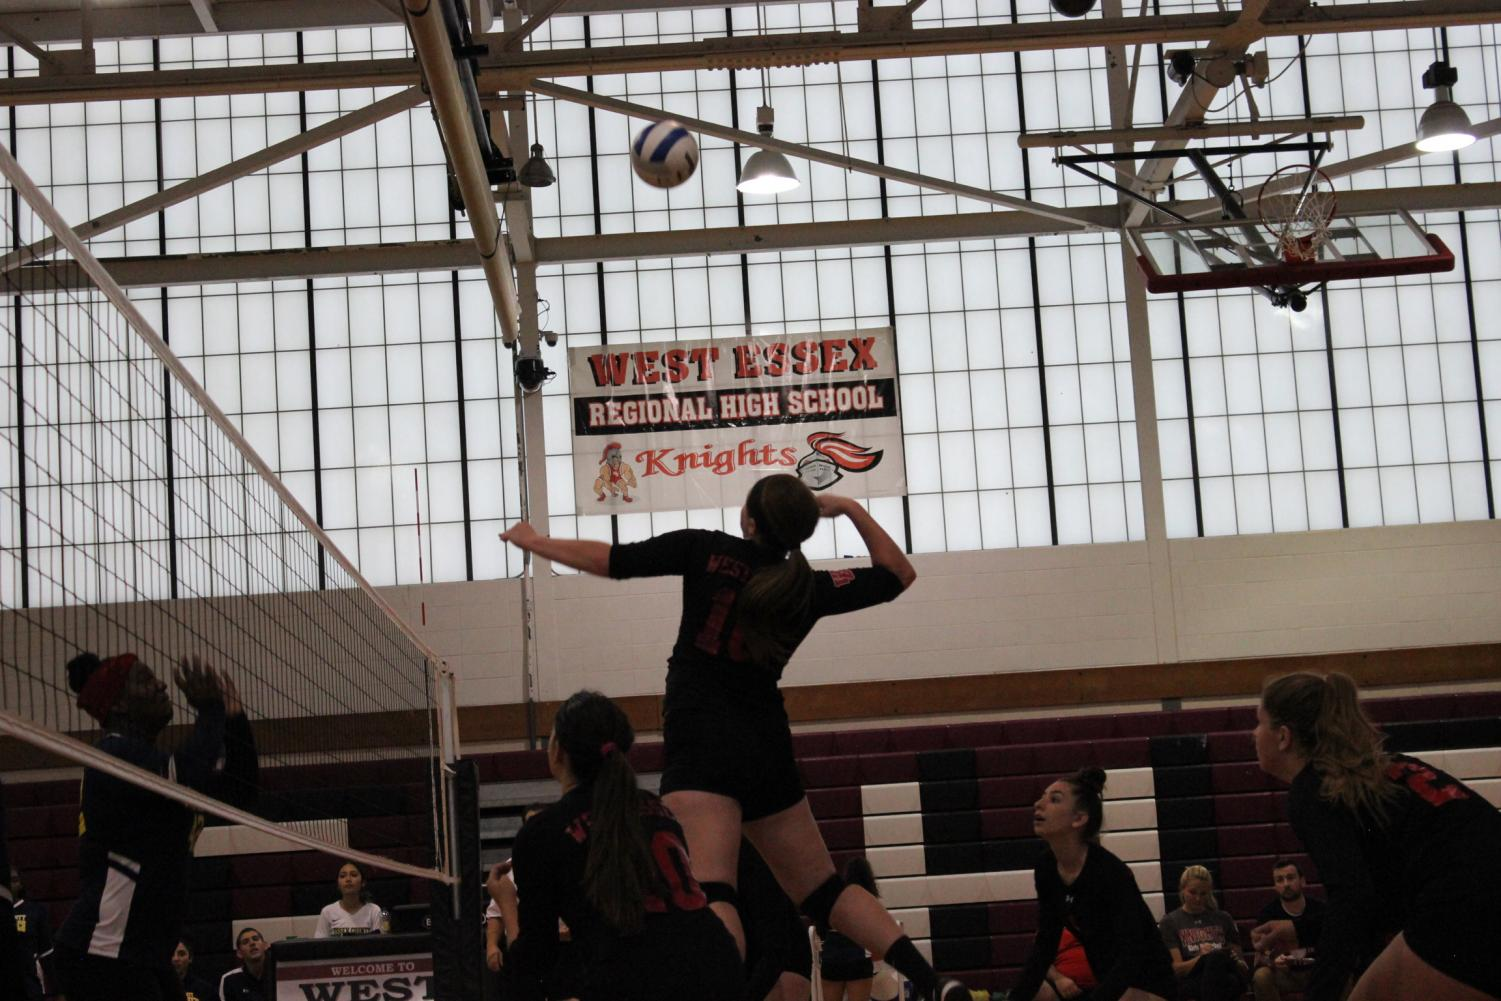 (Photo courtesy of Zoe Offir) Senior Jess Coia spikes during a home game at West Essex.